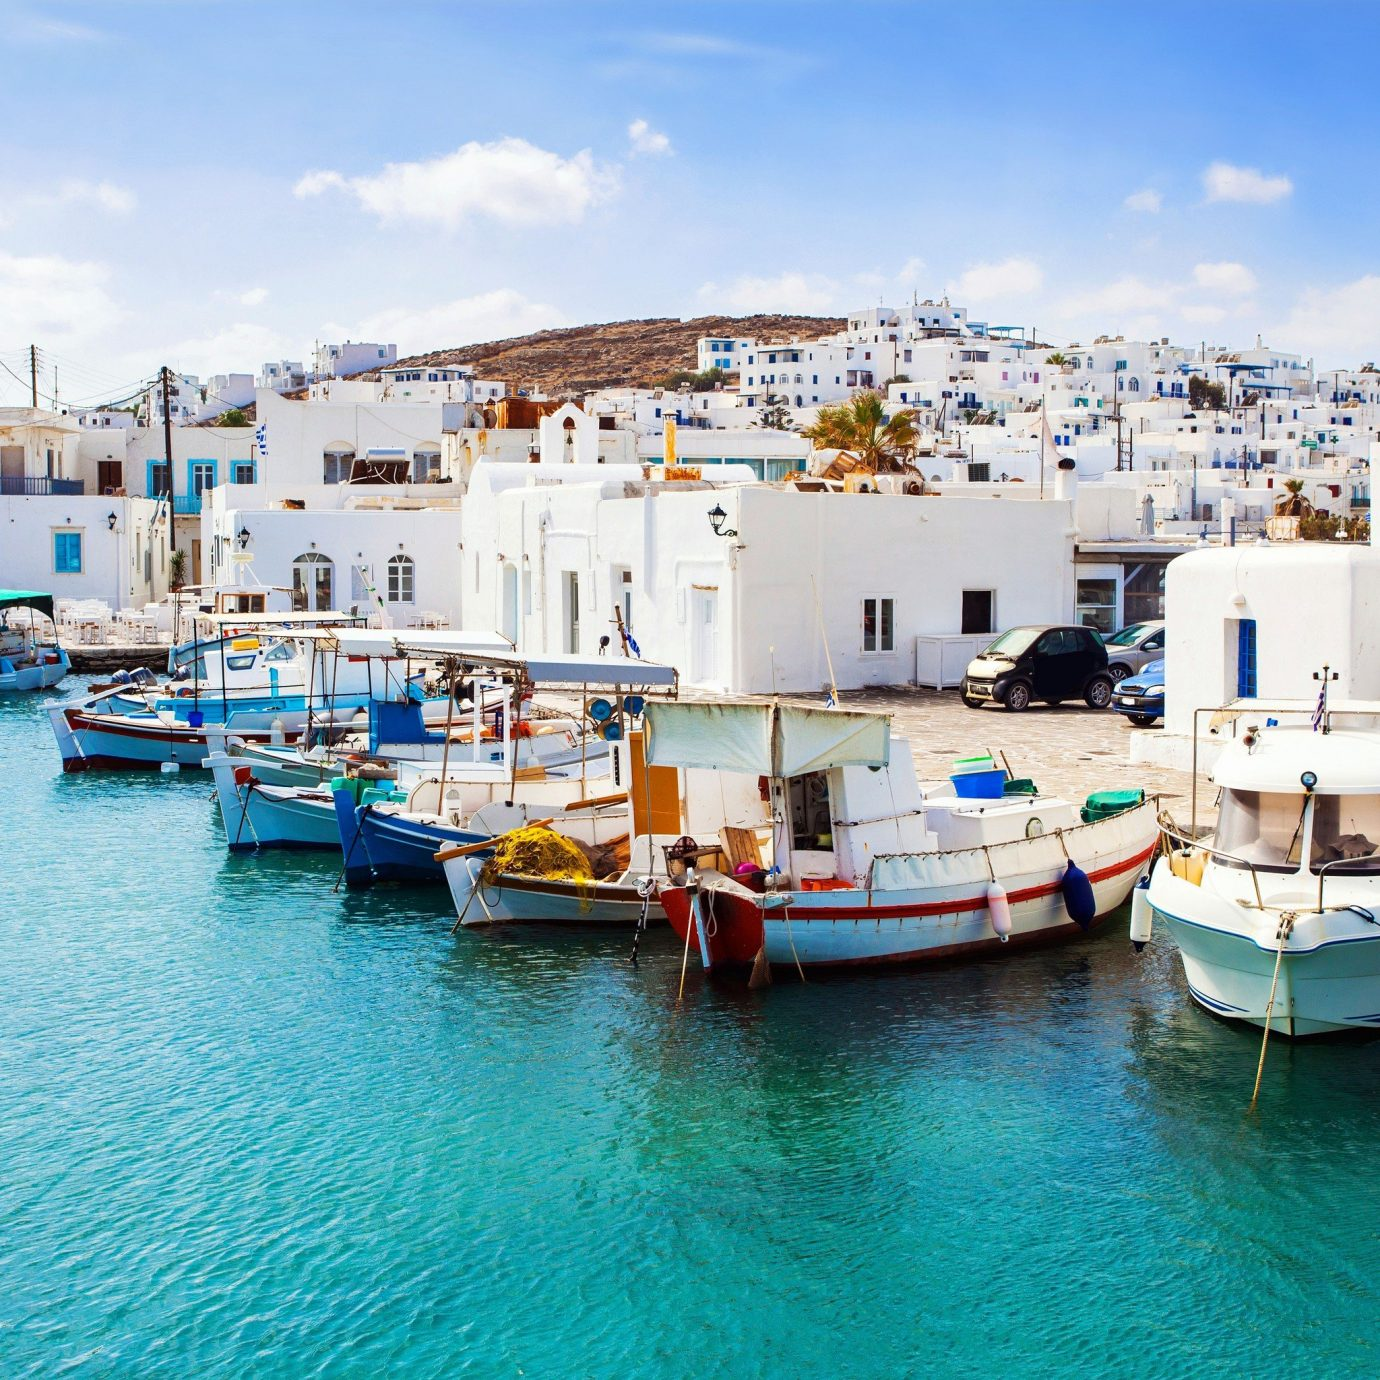 Beautiful view of an Island and boats in Greece.